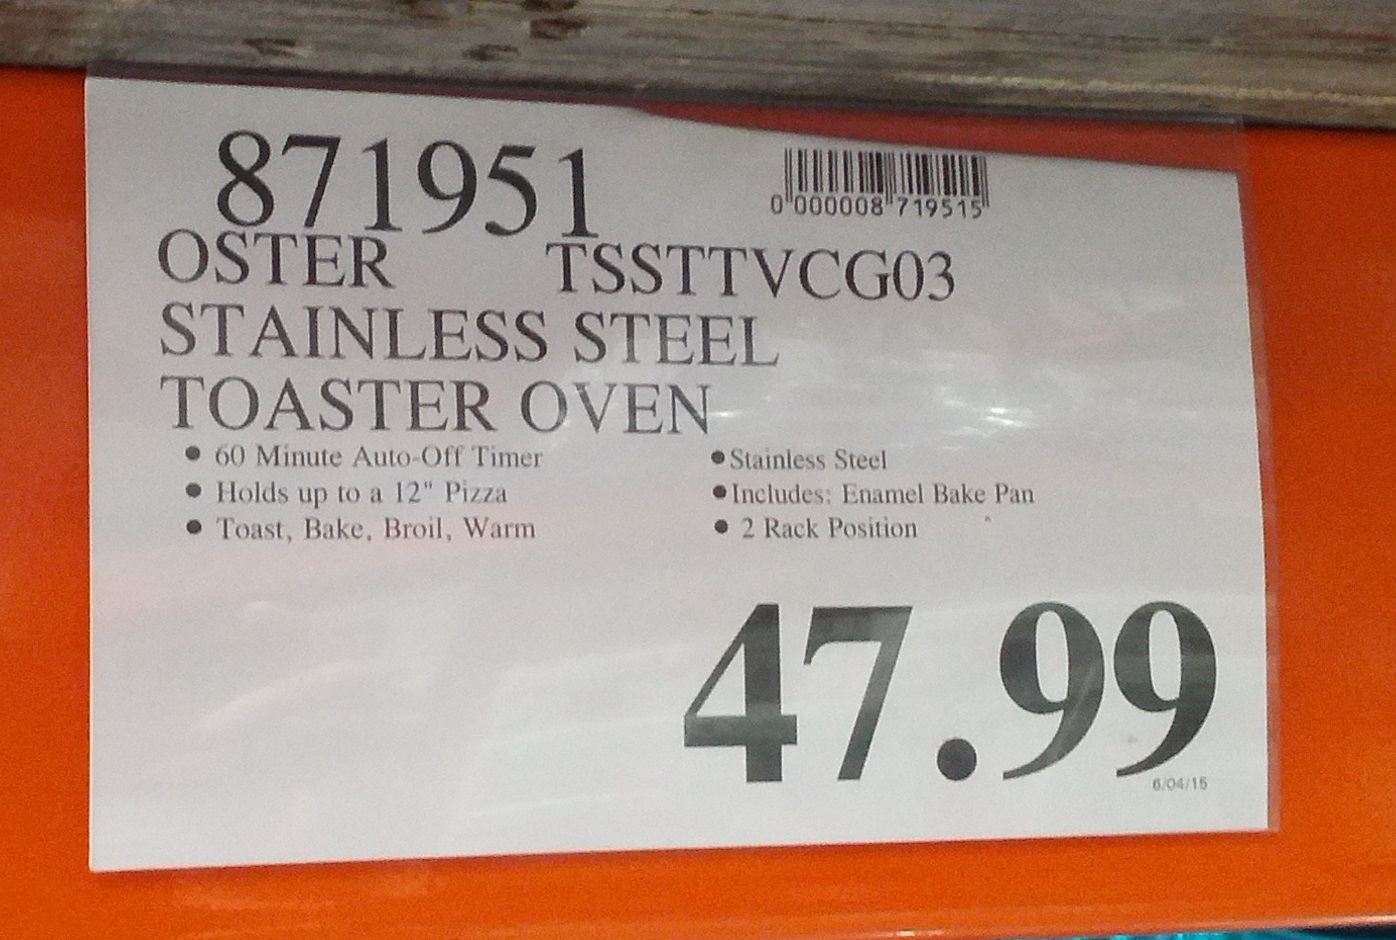 ... Stainless Steel Convection Countertop Oven (TSSTTVCG03) at Costco